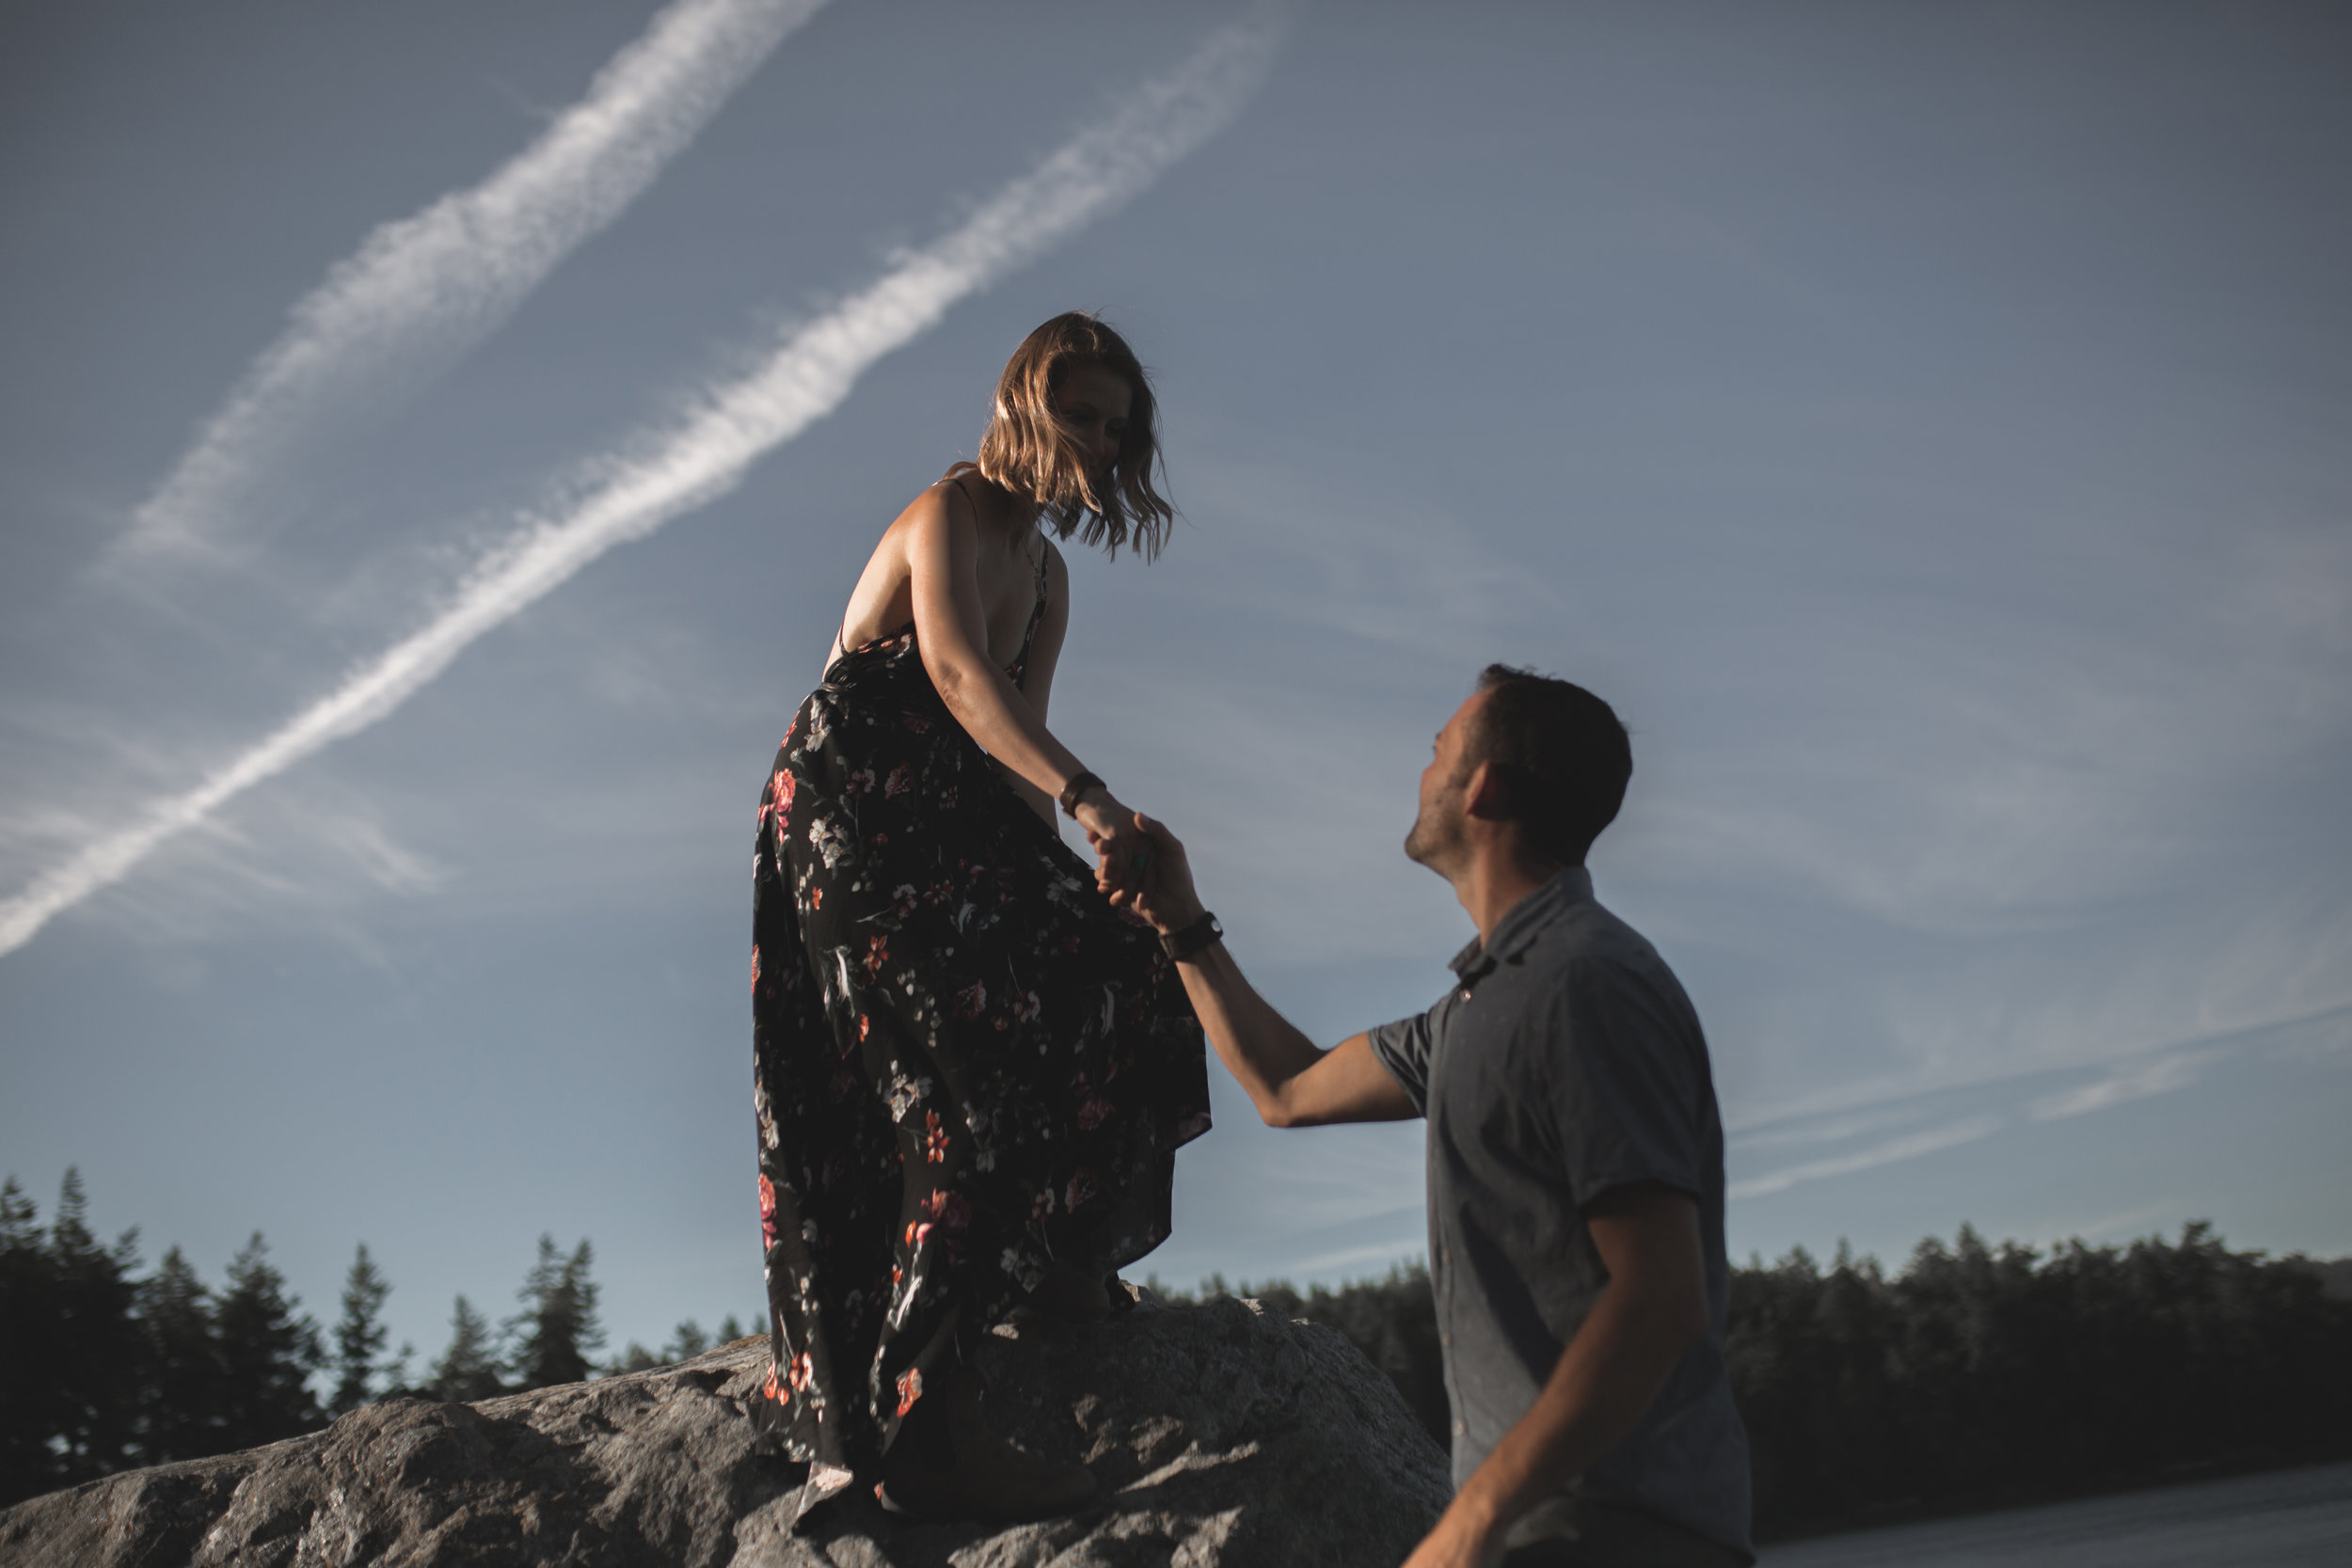 15-Adam-Ziorio-Photography-Engagement-Hangoutsession-East-Sooke-Park-Victoria-BC-Telsa&Willy.jpg